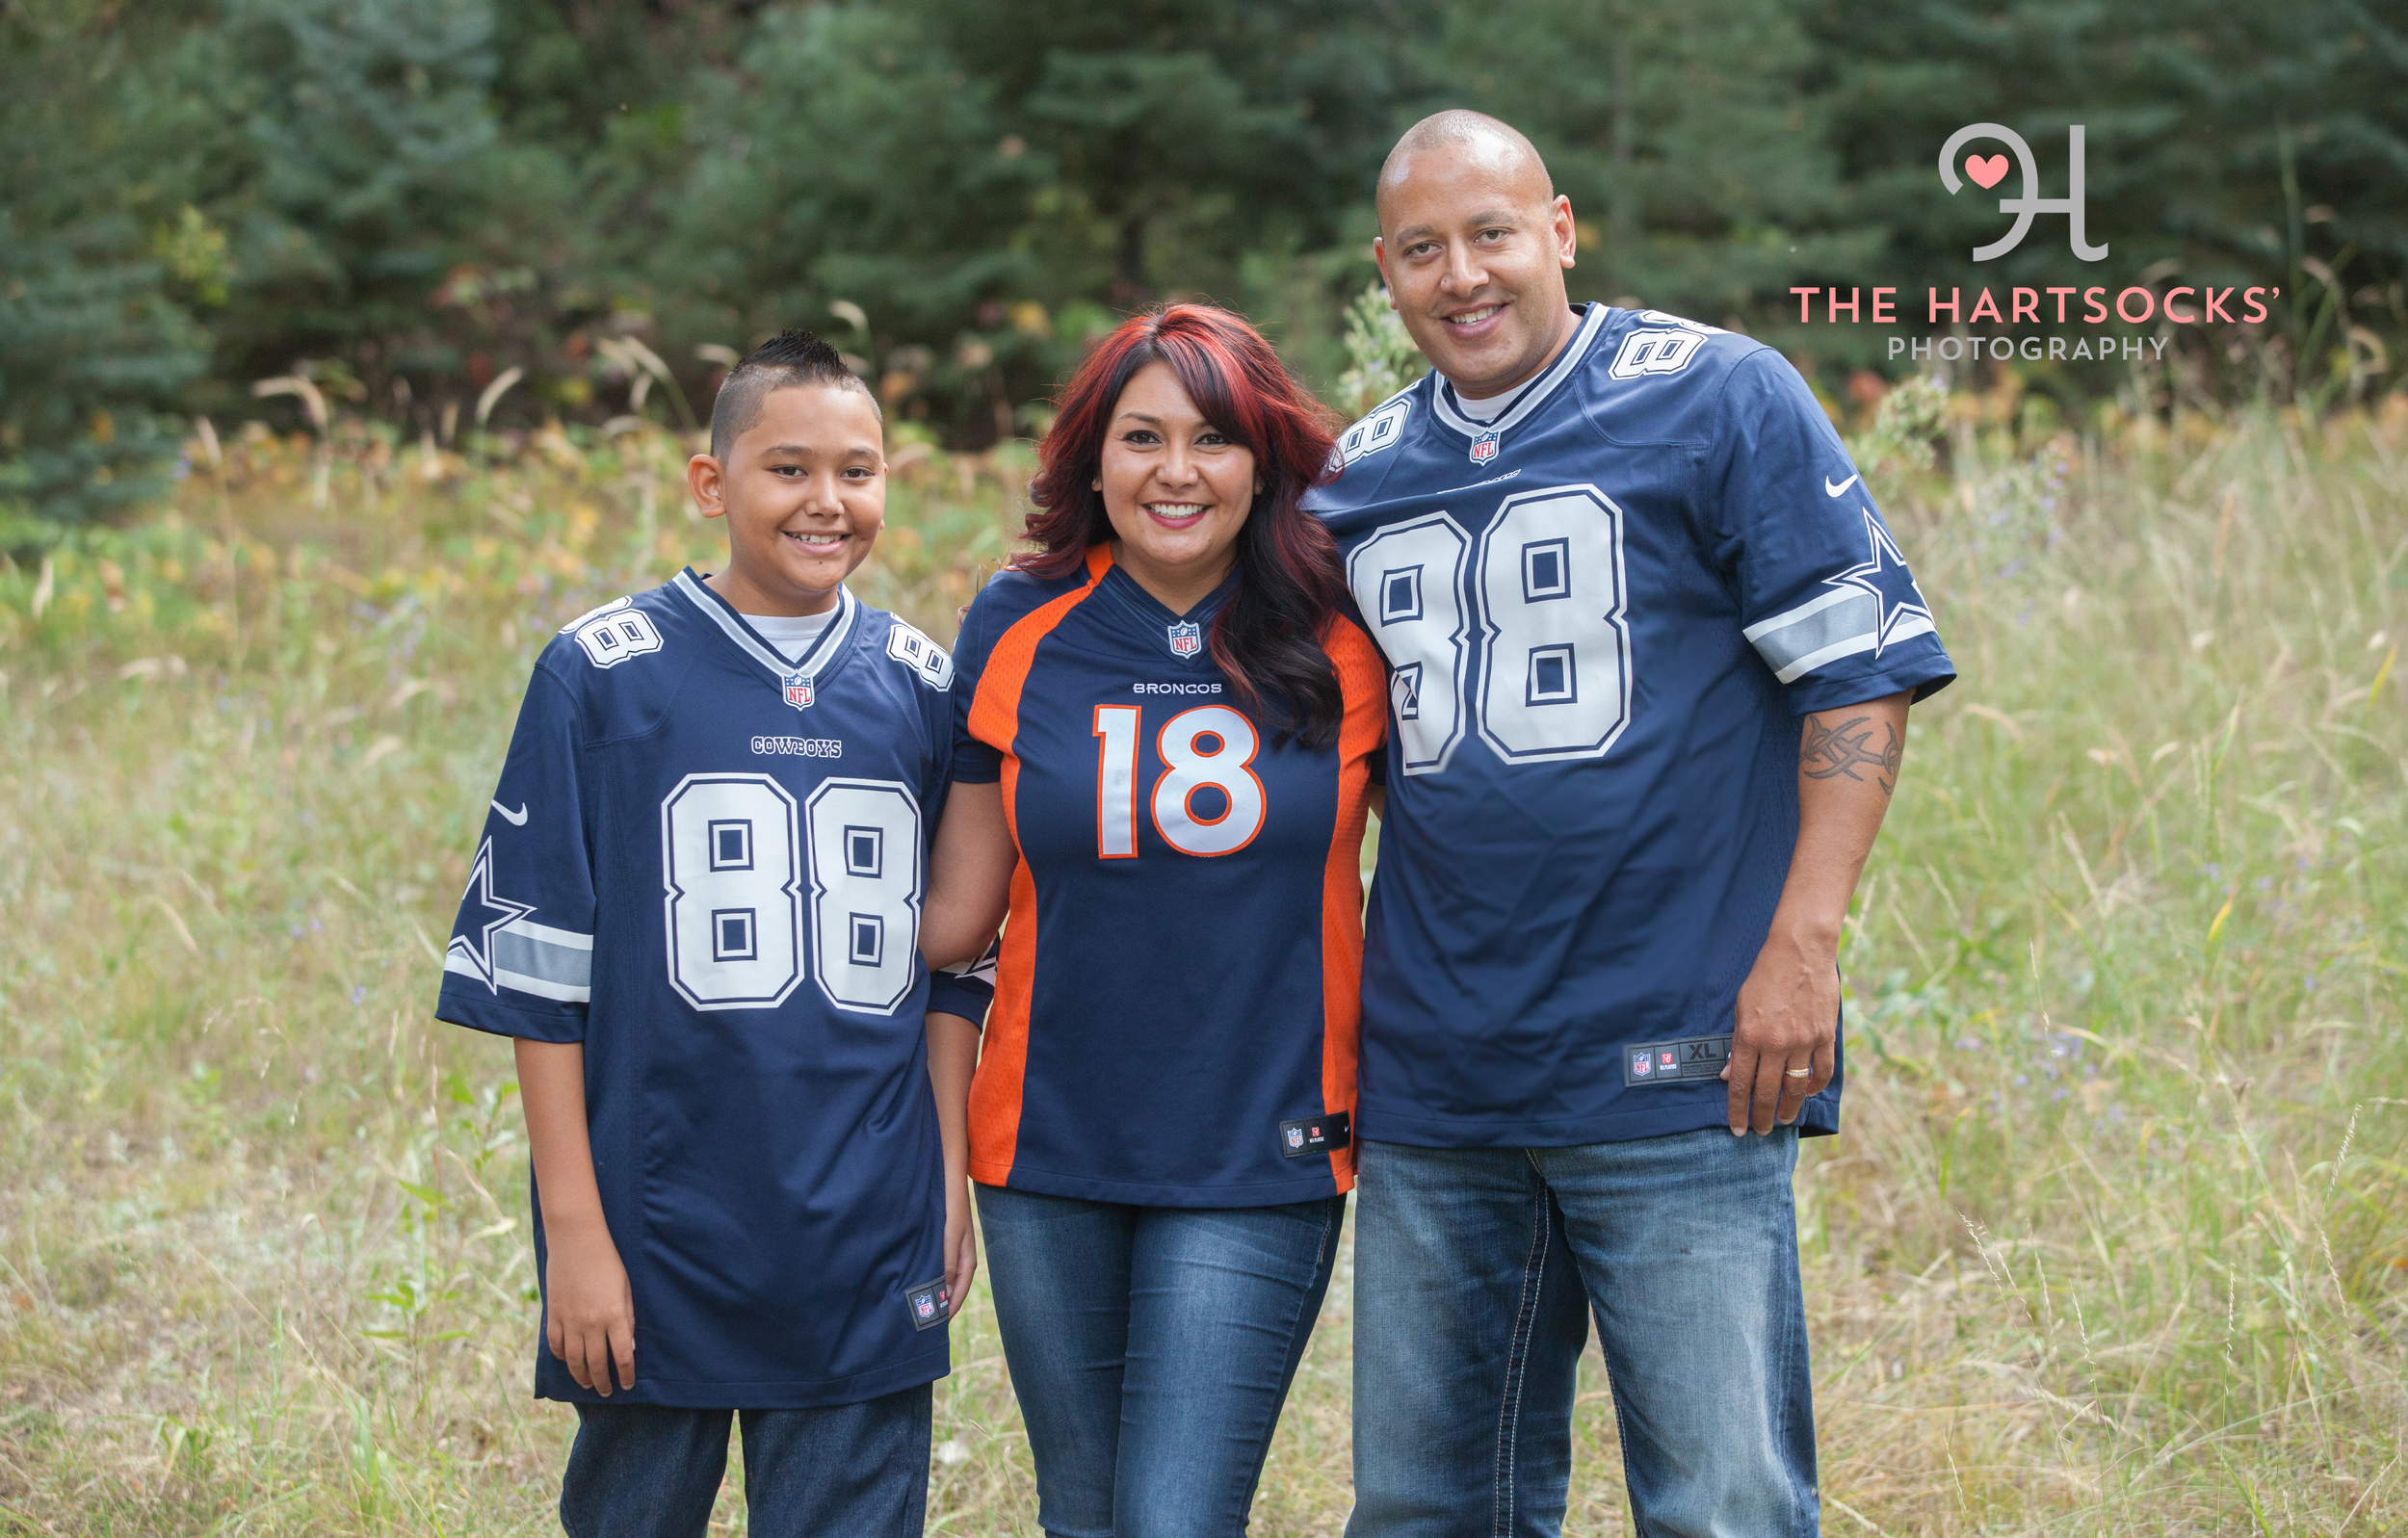 The Hartsocks Photography (3 of 7).jpg